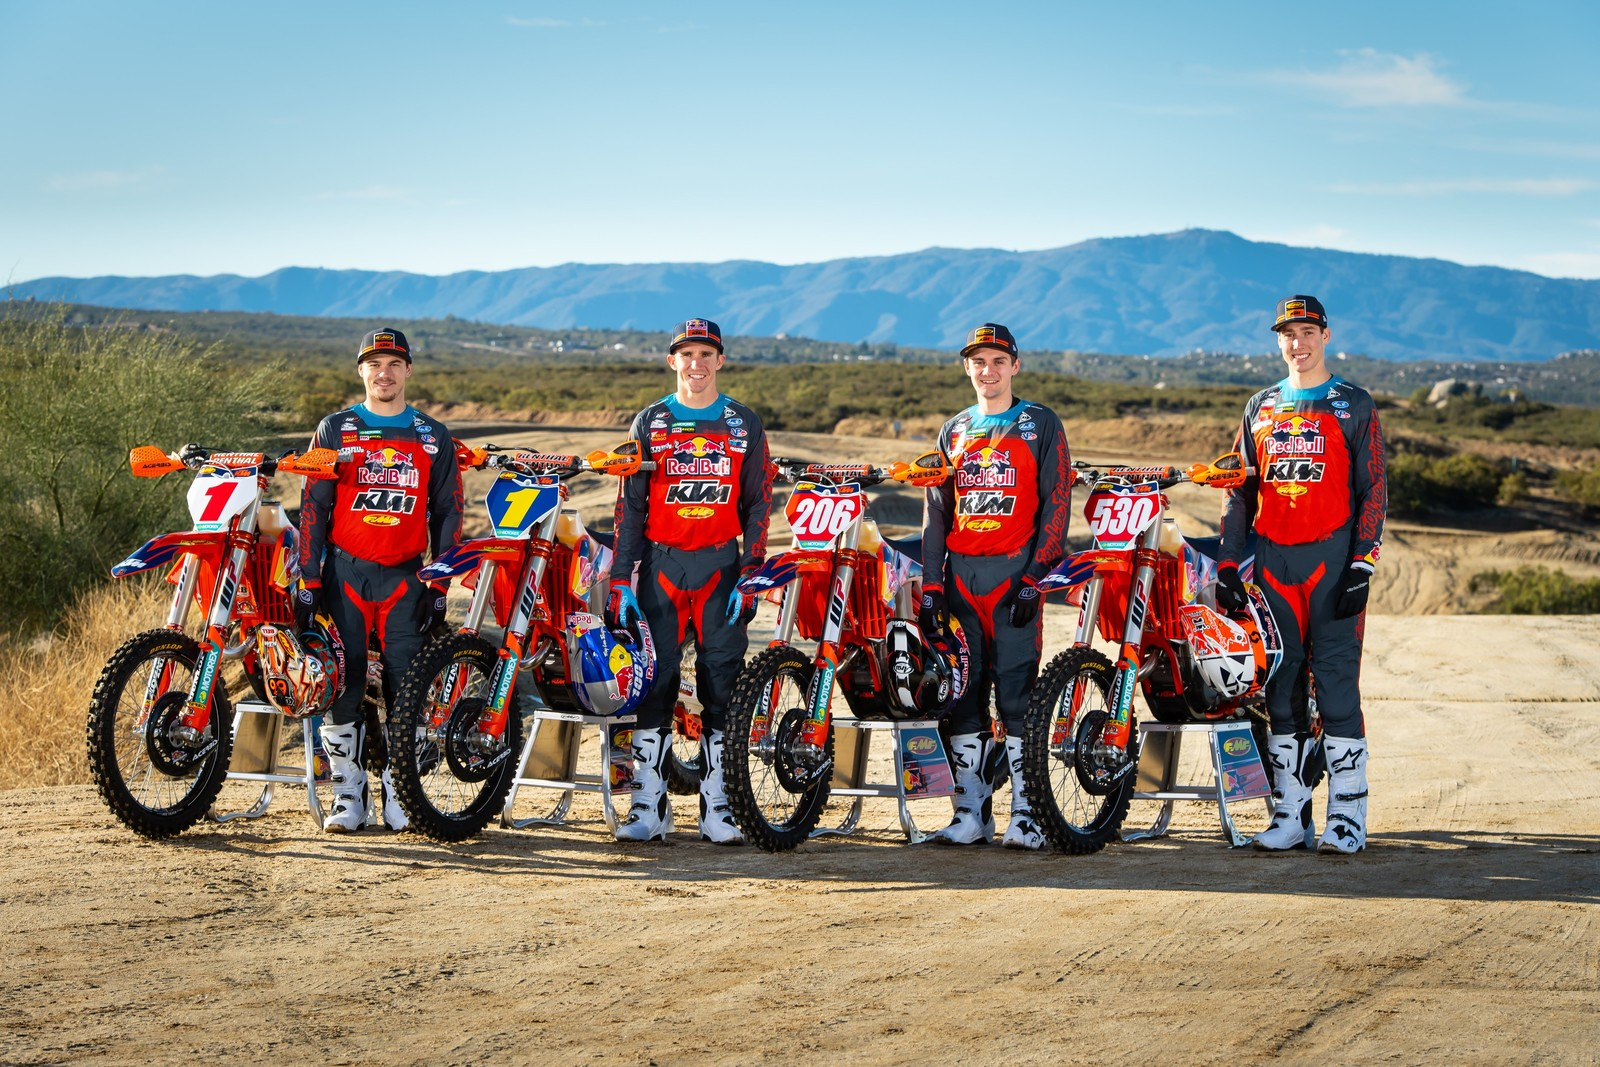 FMF KTM Factory Racing Announces 2020 Off-Road Rider Lineup